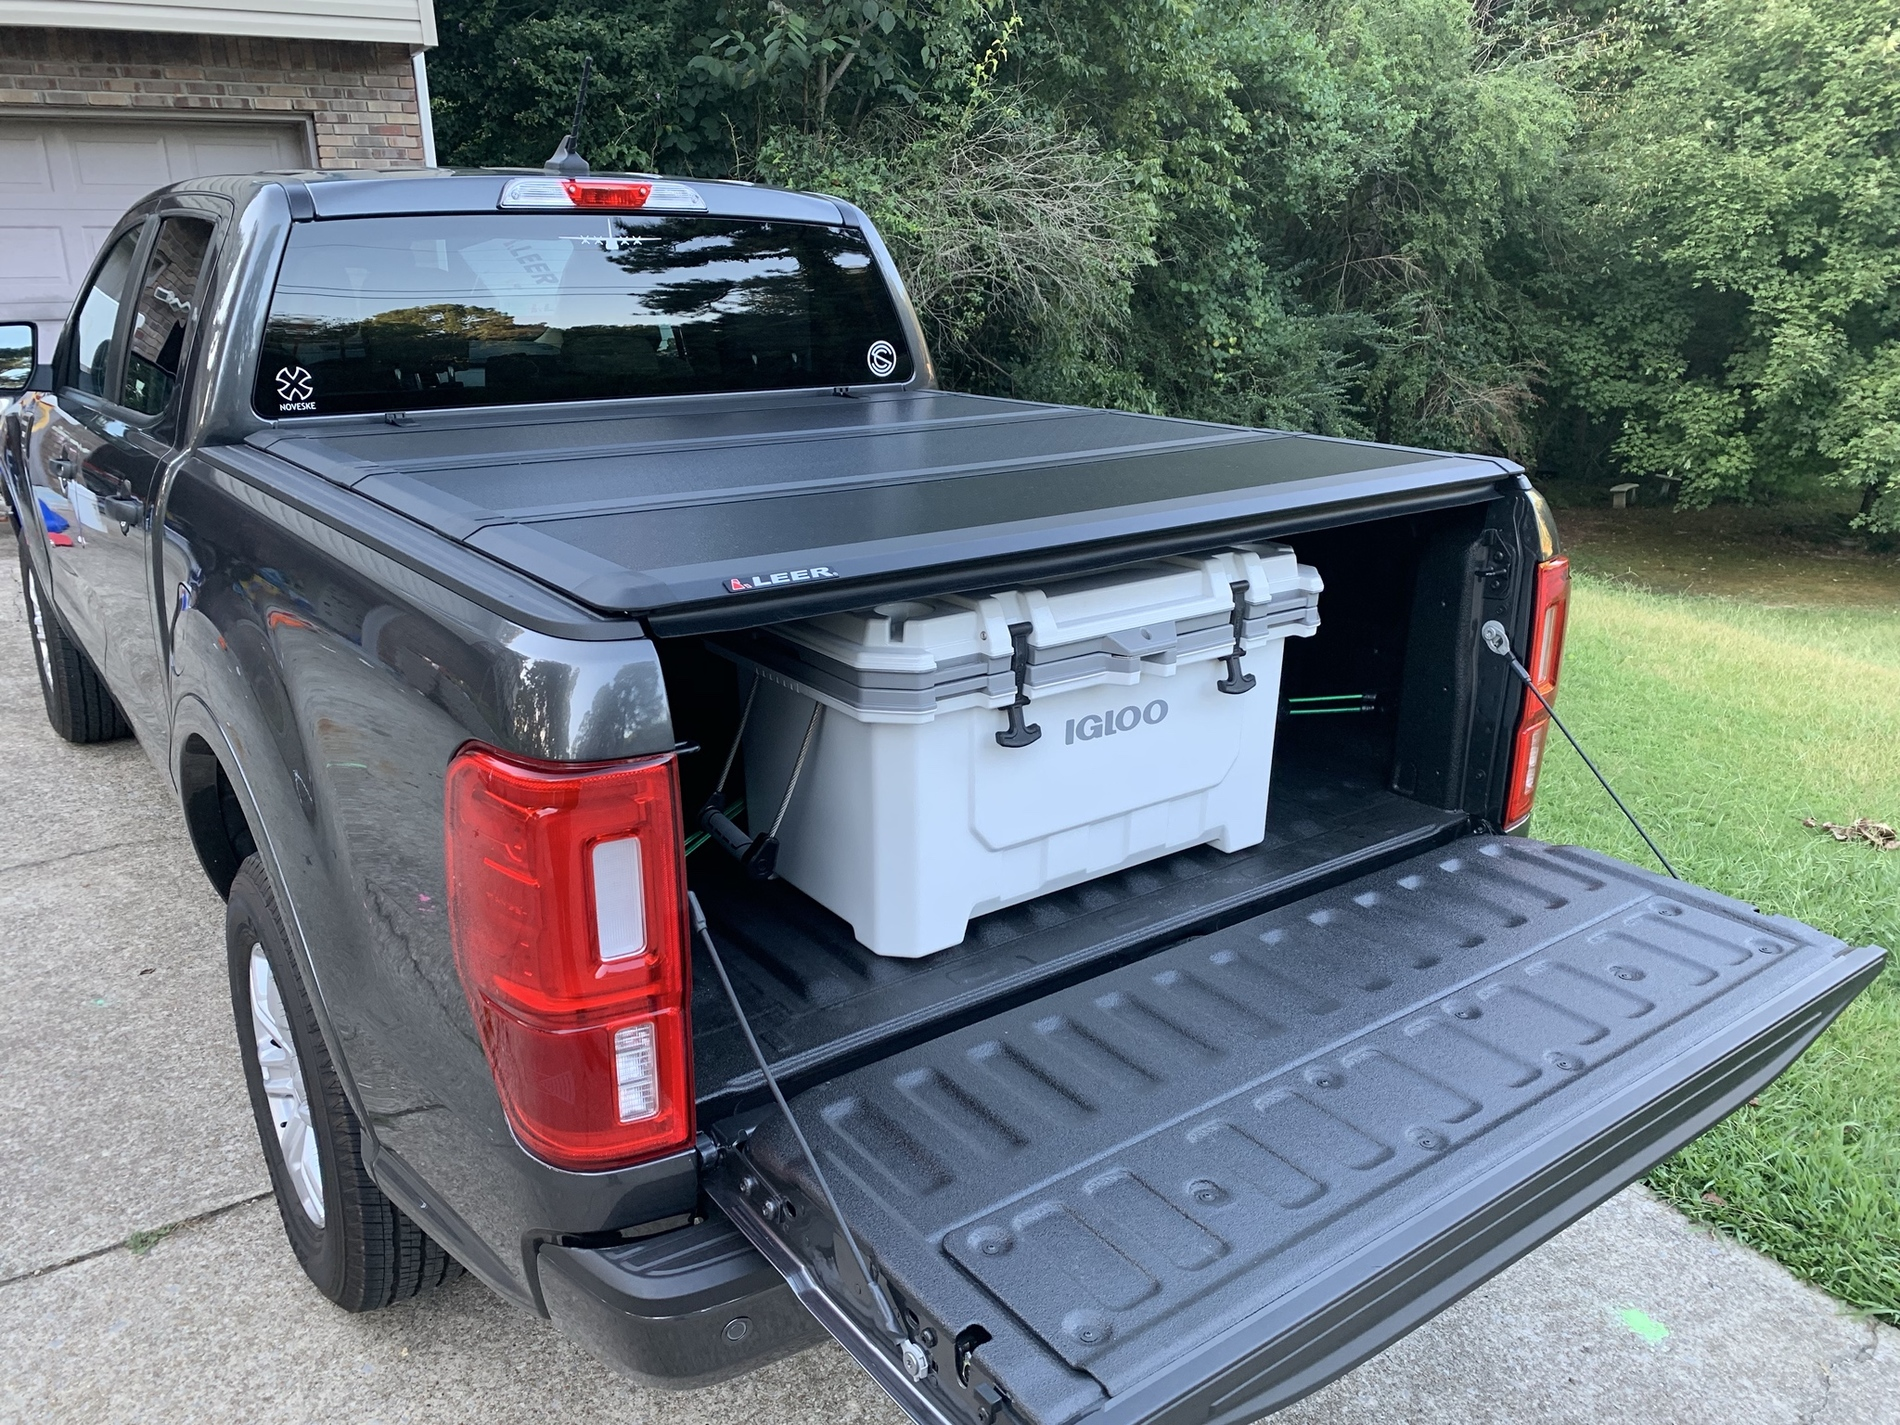 Leer Hard Folding Hf350m Tonneau Cover A Far Superior Quality Choice Page 3 2019 Ford Ranger And Raptor Forum 5th Generation Ranger5g Com